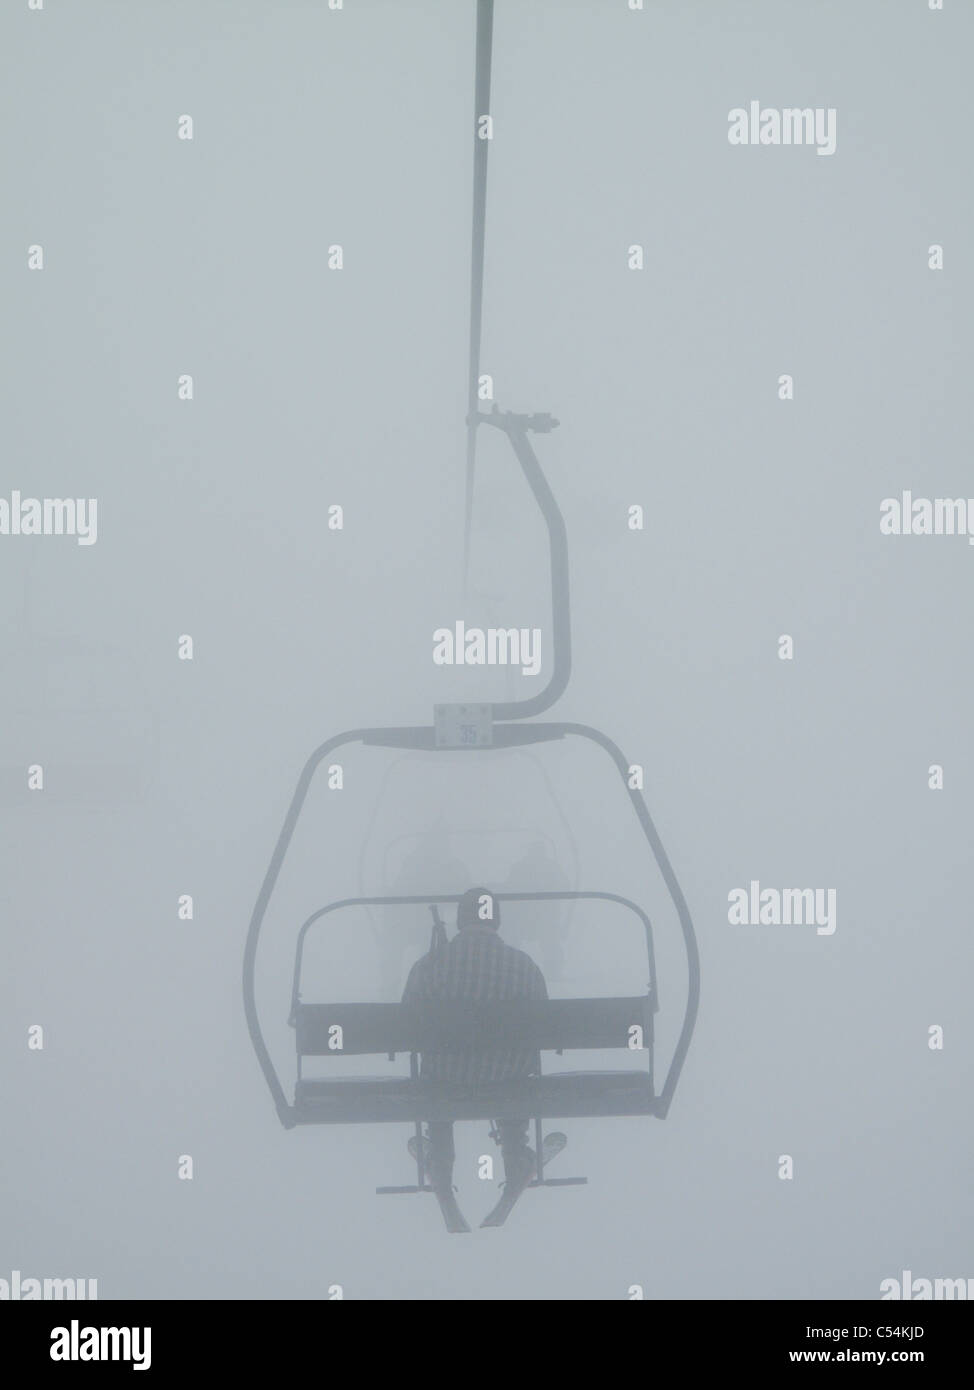 Chairlift In The Fog Stock Photos & Chairlift In The Fog Stock ...